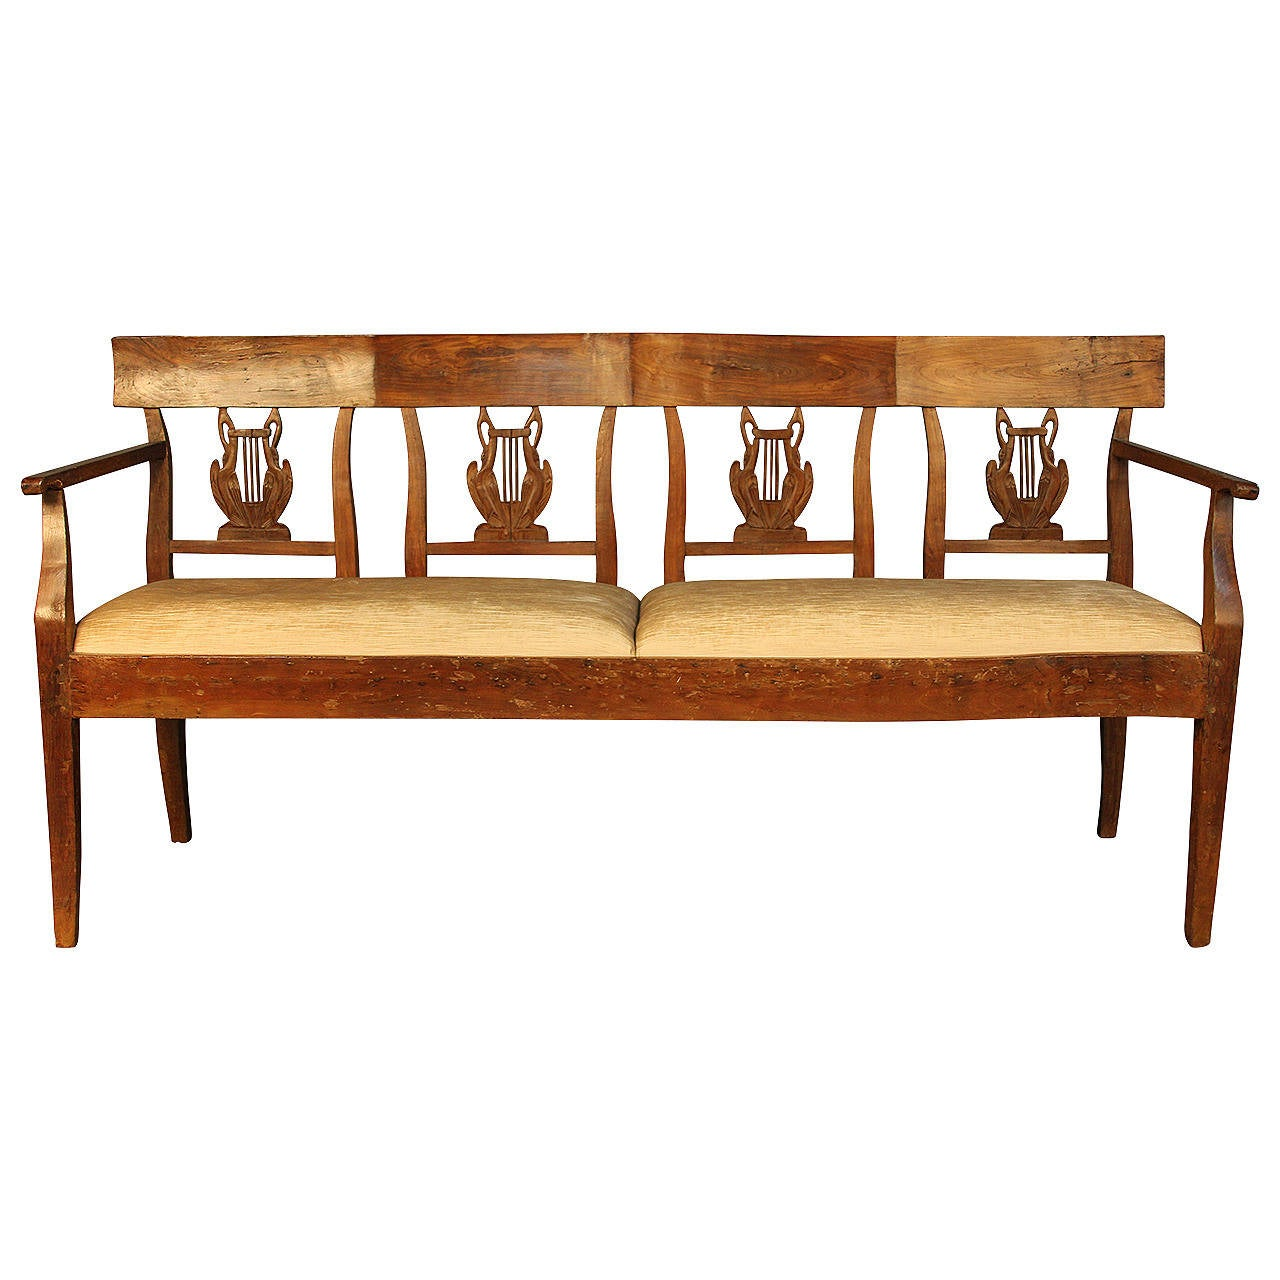 19th Century Carved Back Wood Upholstered Bench Settee At 1stdibs